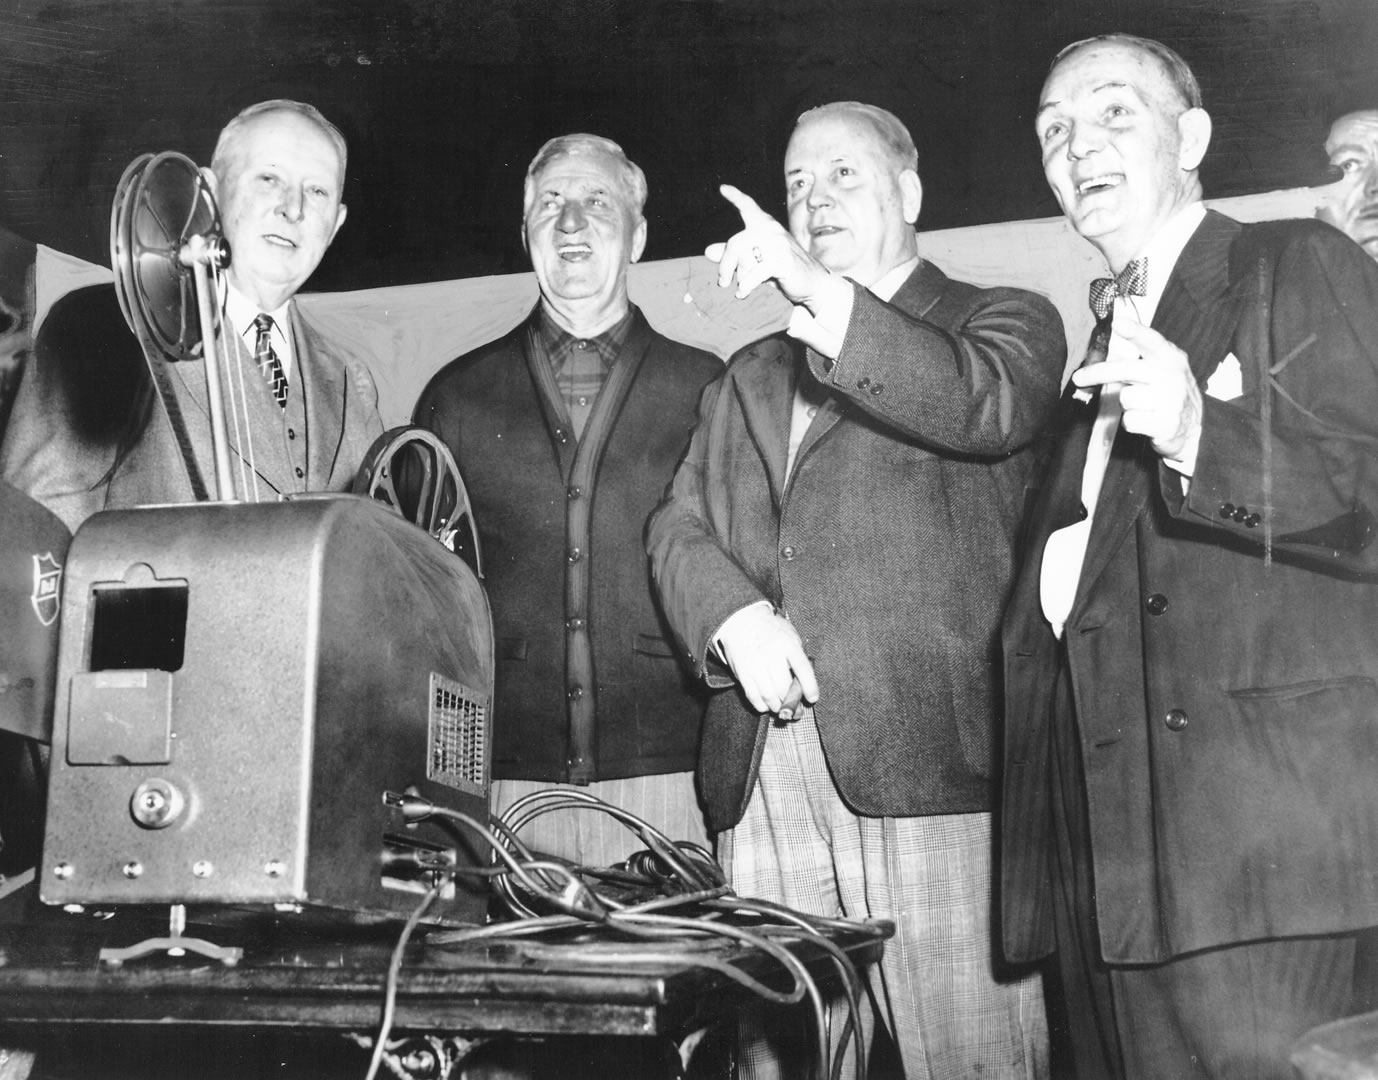 Buck (far R) during his roast.